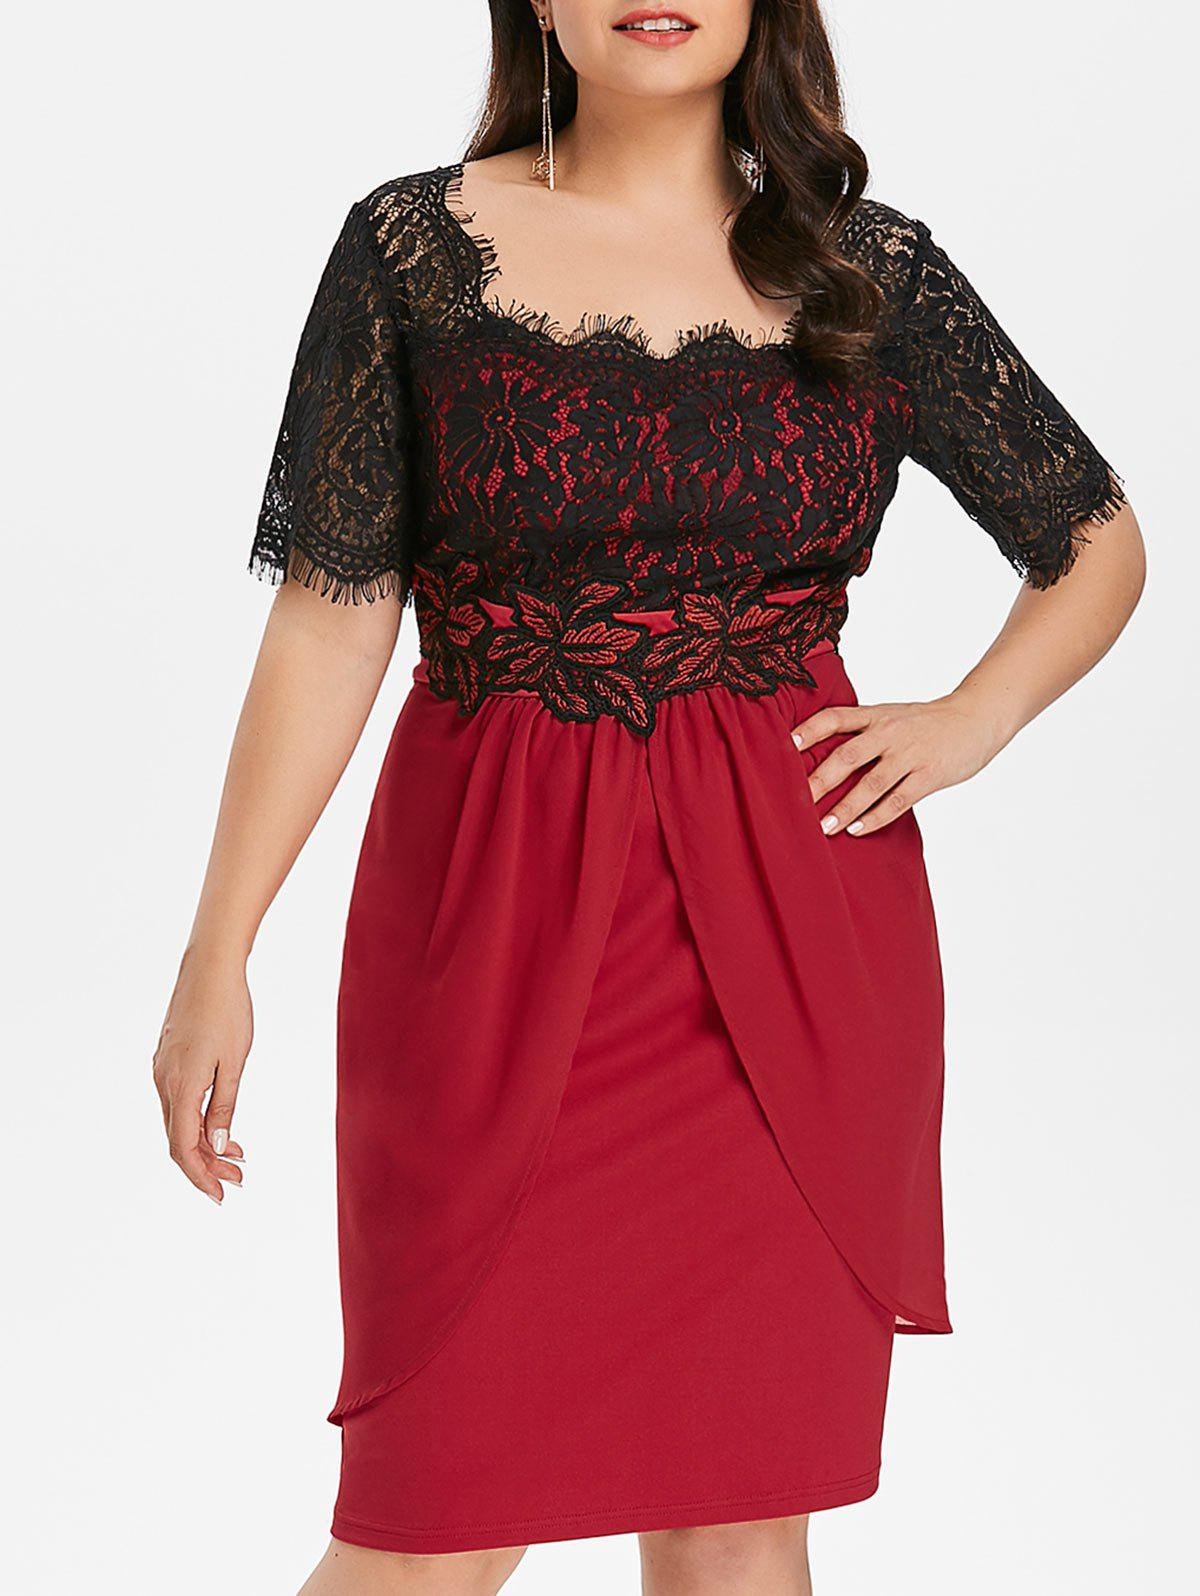 9f408cc44856 29% OFF] Plus Size Eyelash Lace Trim Knee Length Dress | Rosegal